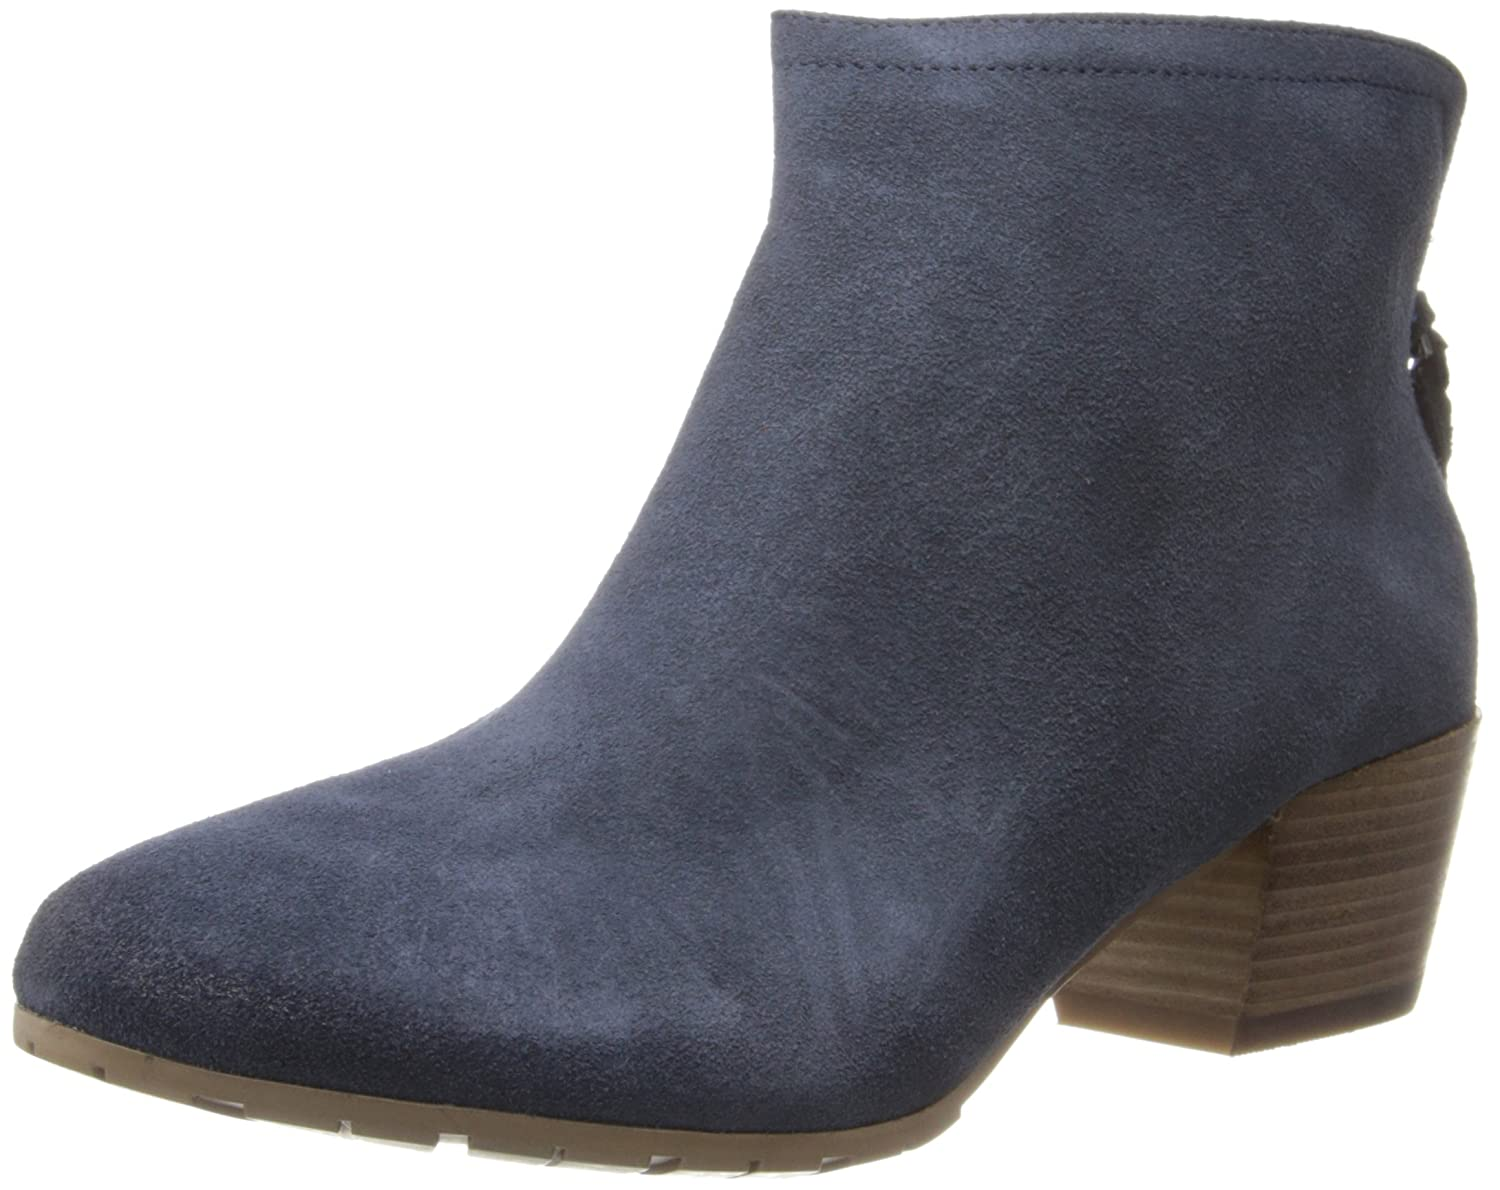 Kenneth Cole REACTION Women's Pil Age Ankle Boot B00IM5BJ8M 6 B(M) US|Navy